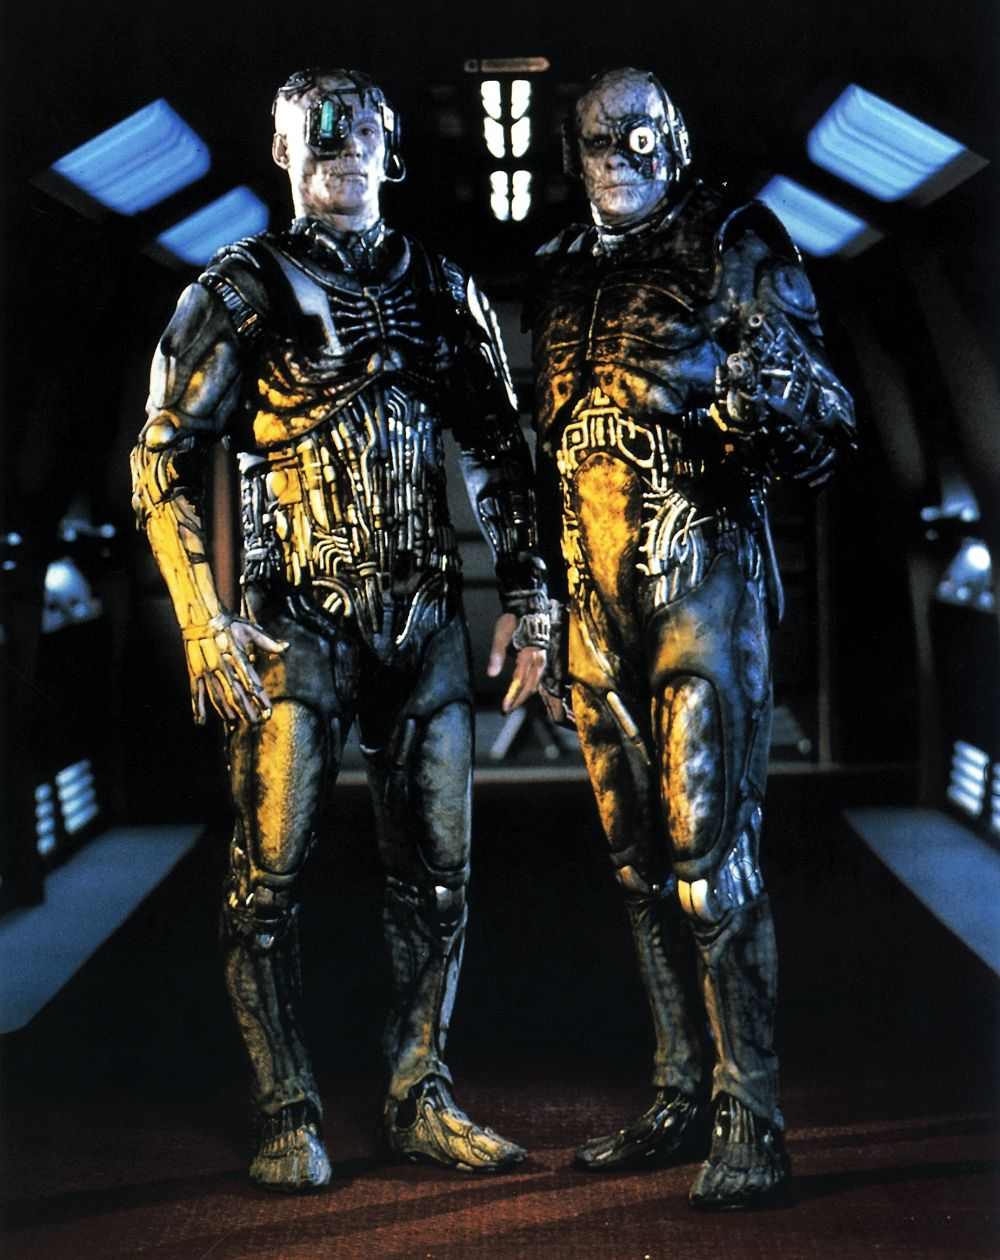 Drones_FC1.jpg (1000×1260) & Drones_FC1.jpg (1000×1260) | ? We are the Borg | Pinterest | Star ...